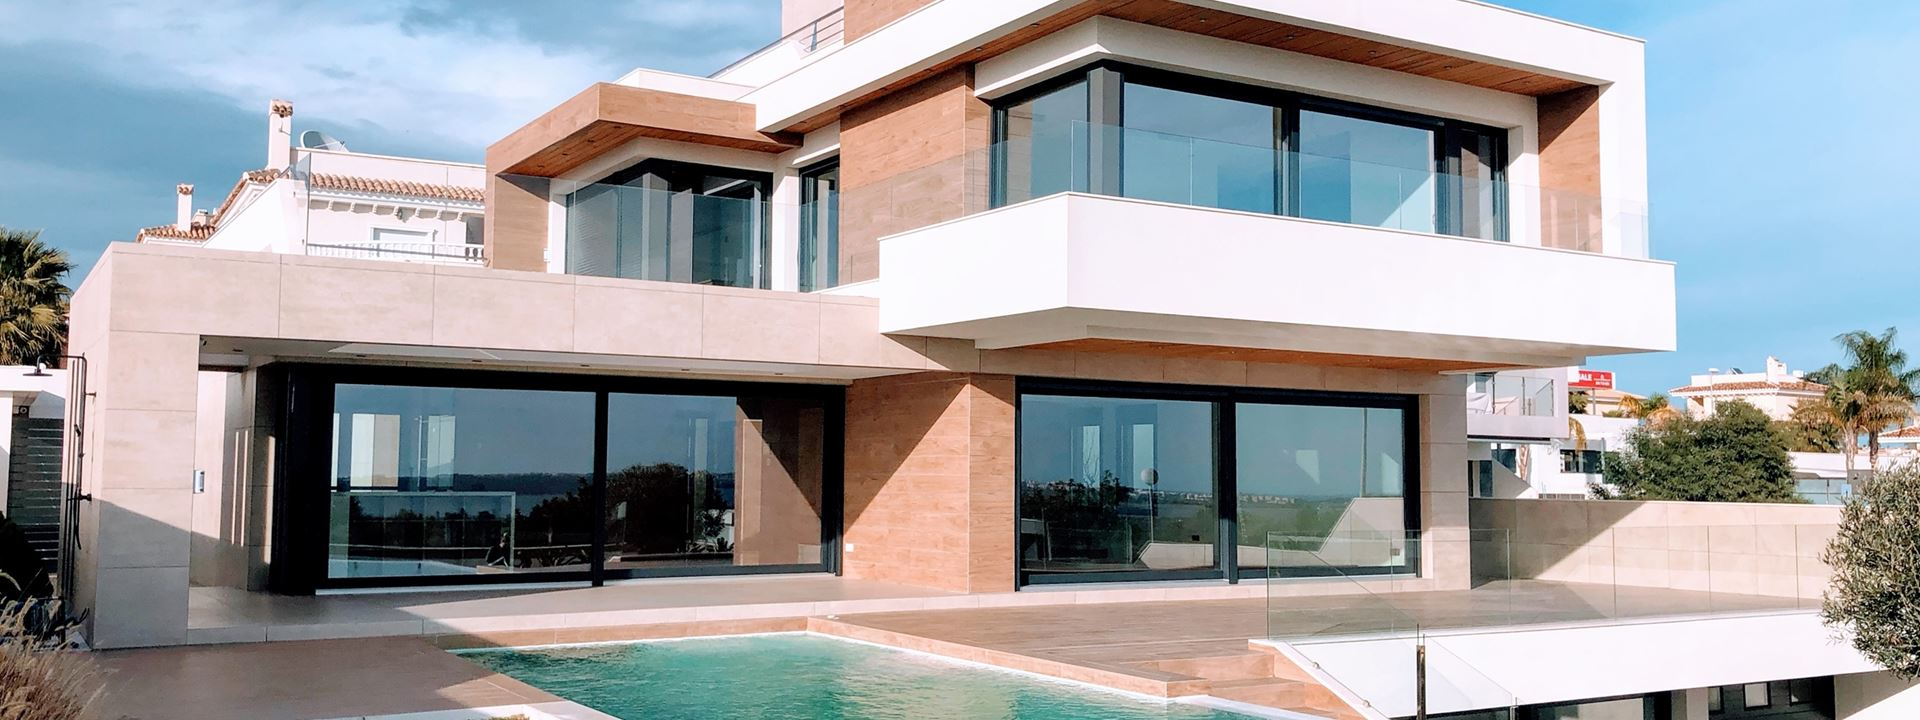 Developments that shape the real estate market industry